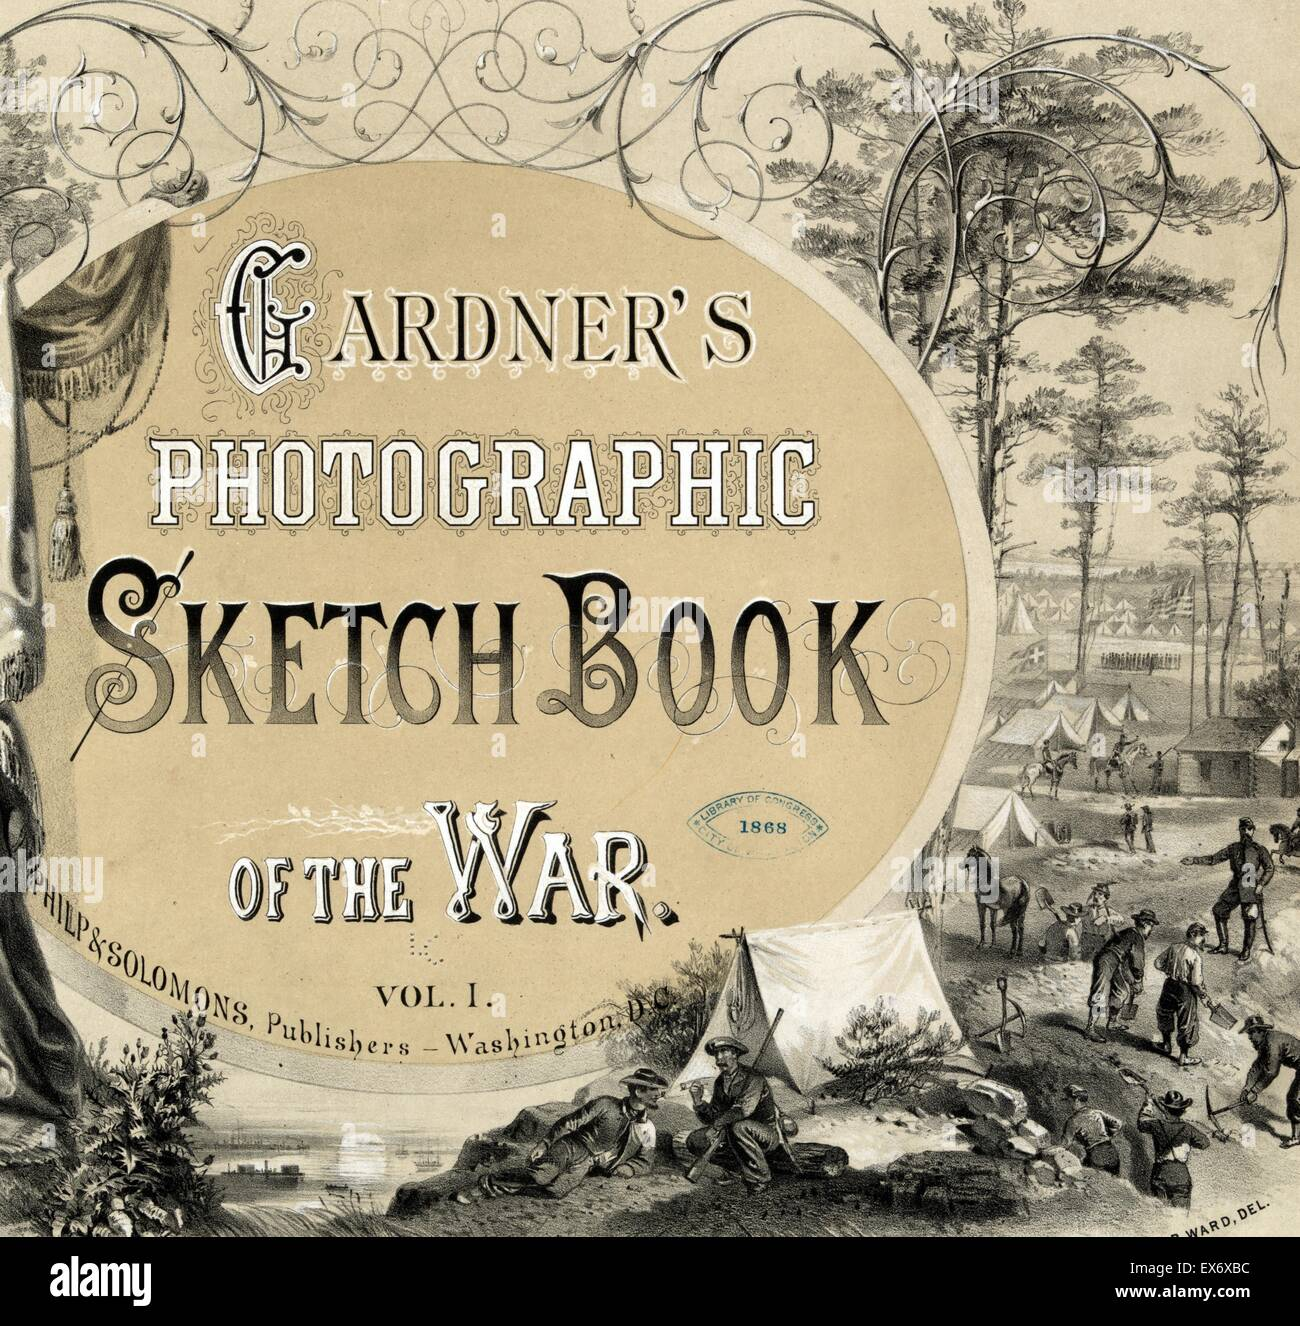 Title page of a photo album of the American Civil War 1865 - Stock Image